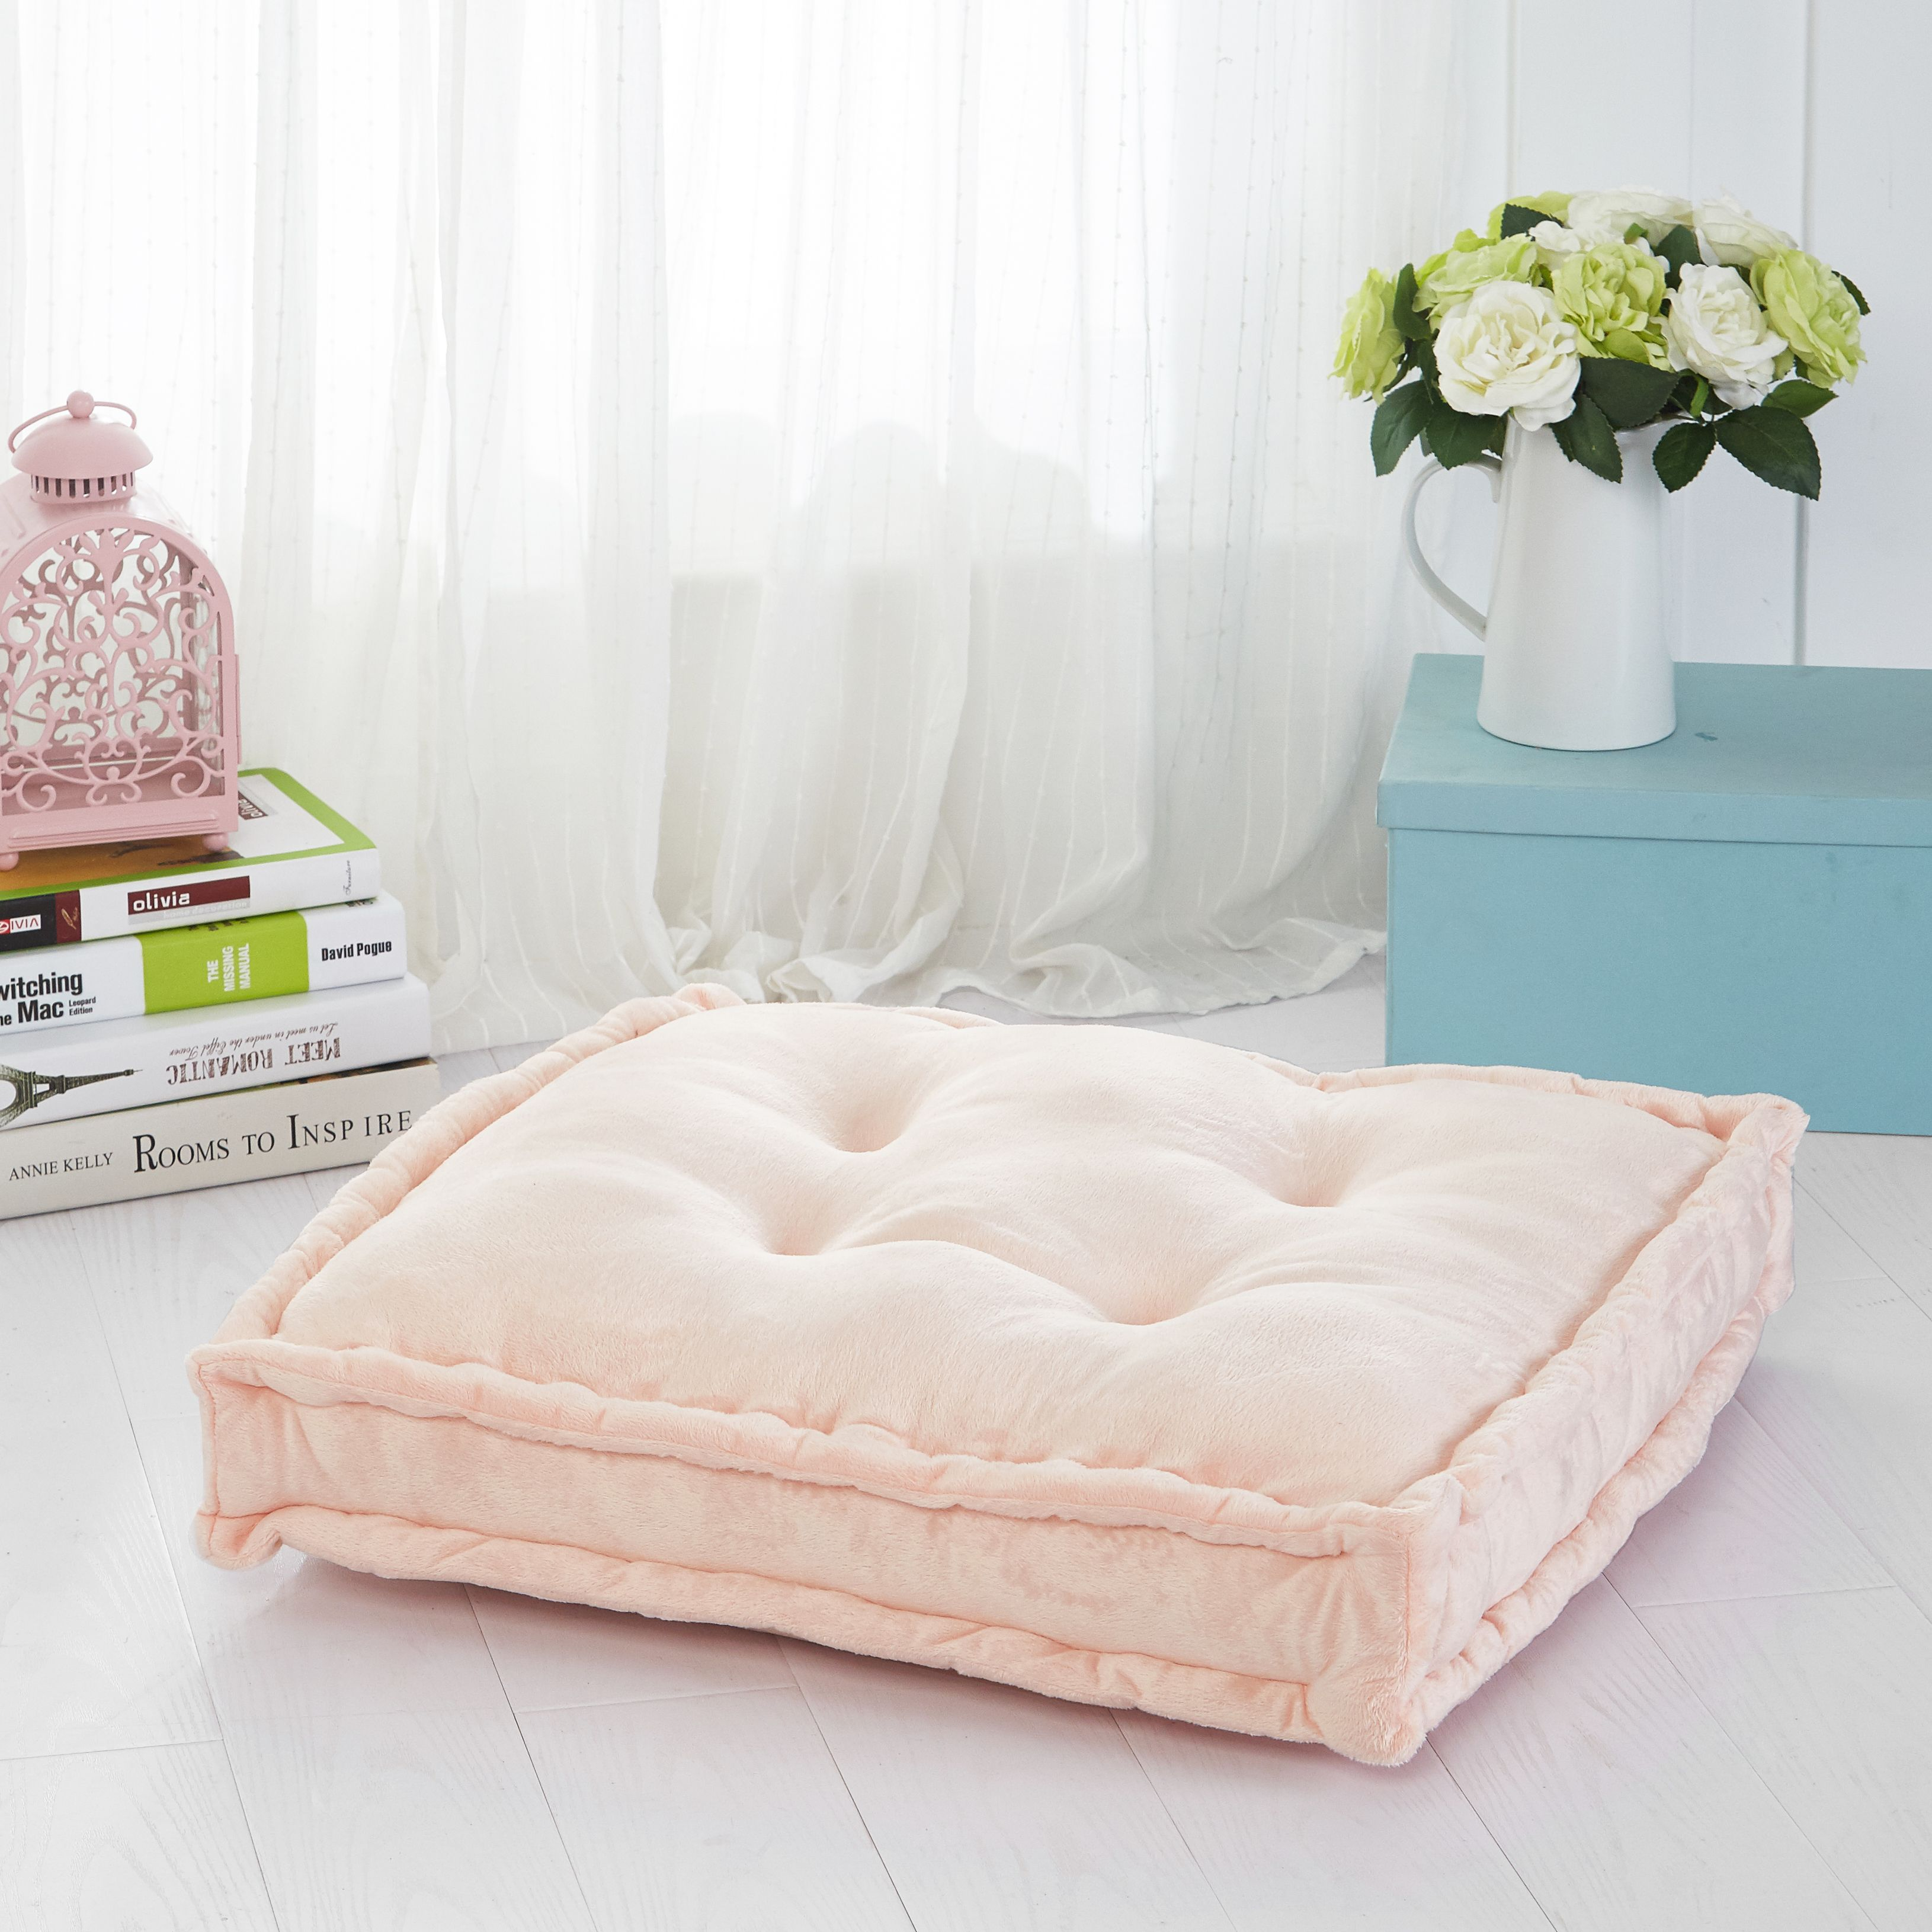 Mainstays Tufted Floor Pillow, Blush | Floor pillows, Walmart and ...